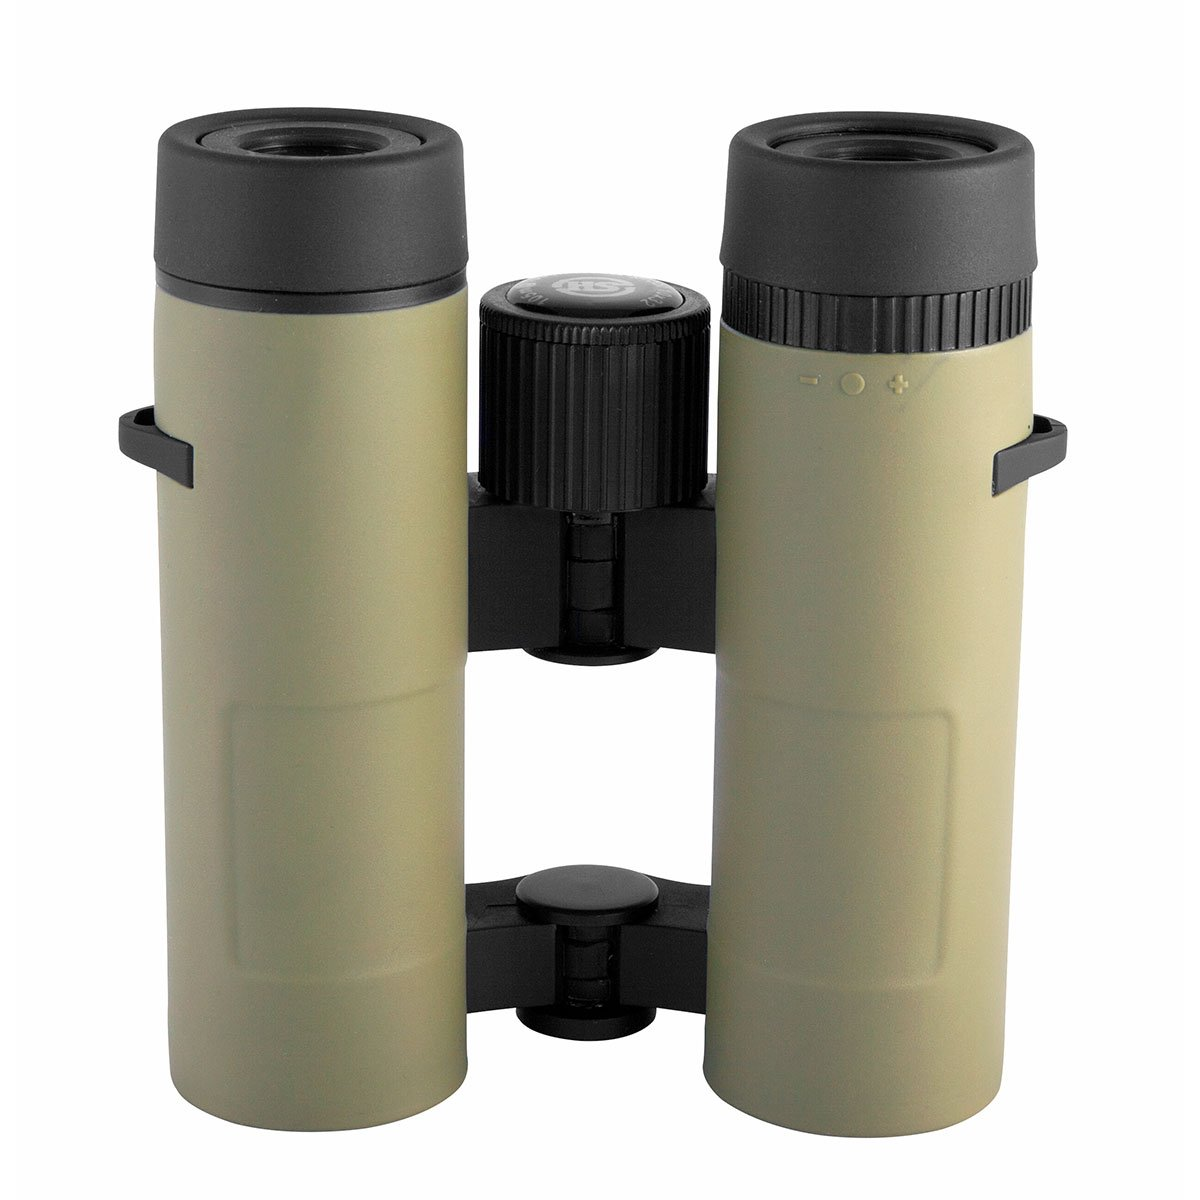 Hunter Specialties 10x32 Primal Series Binocular